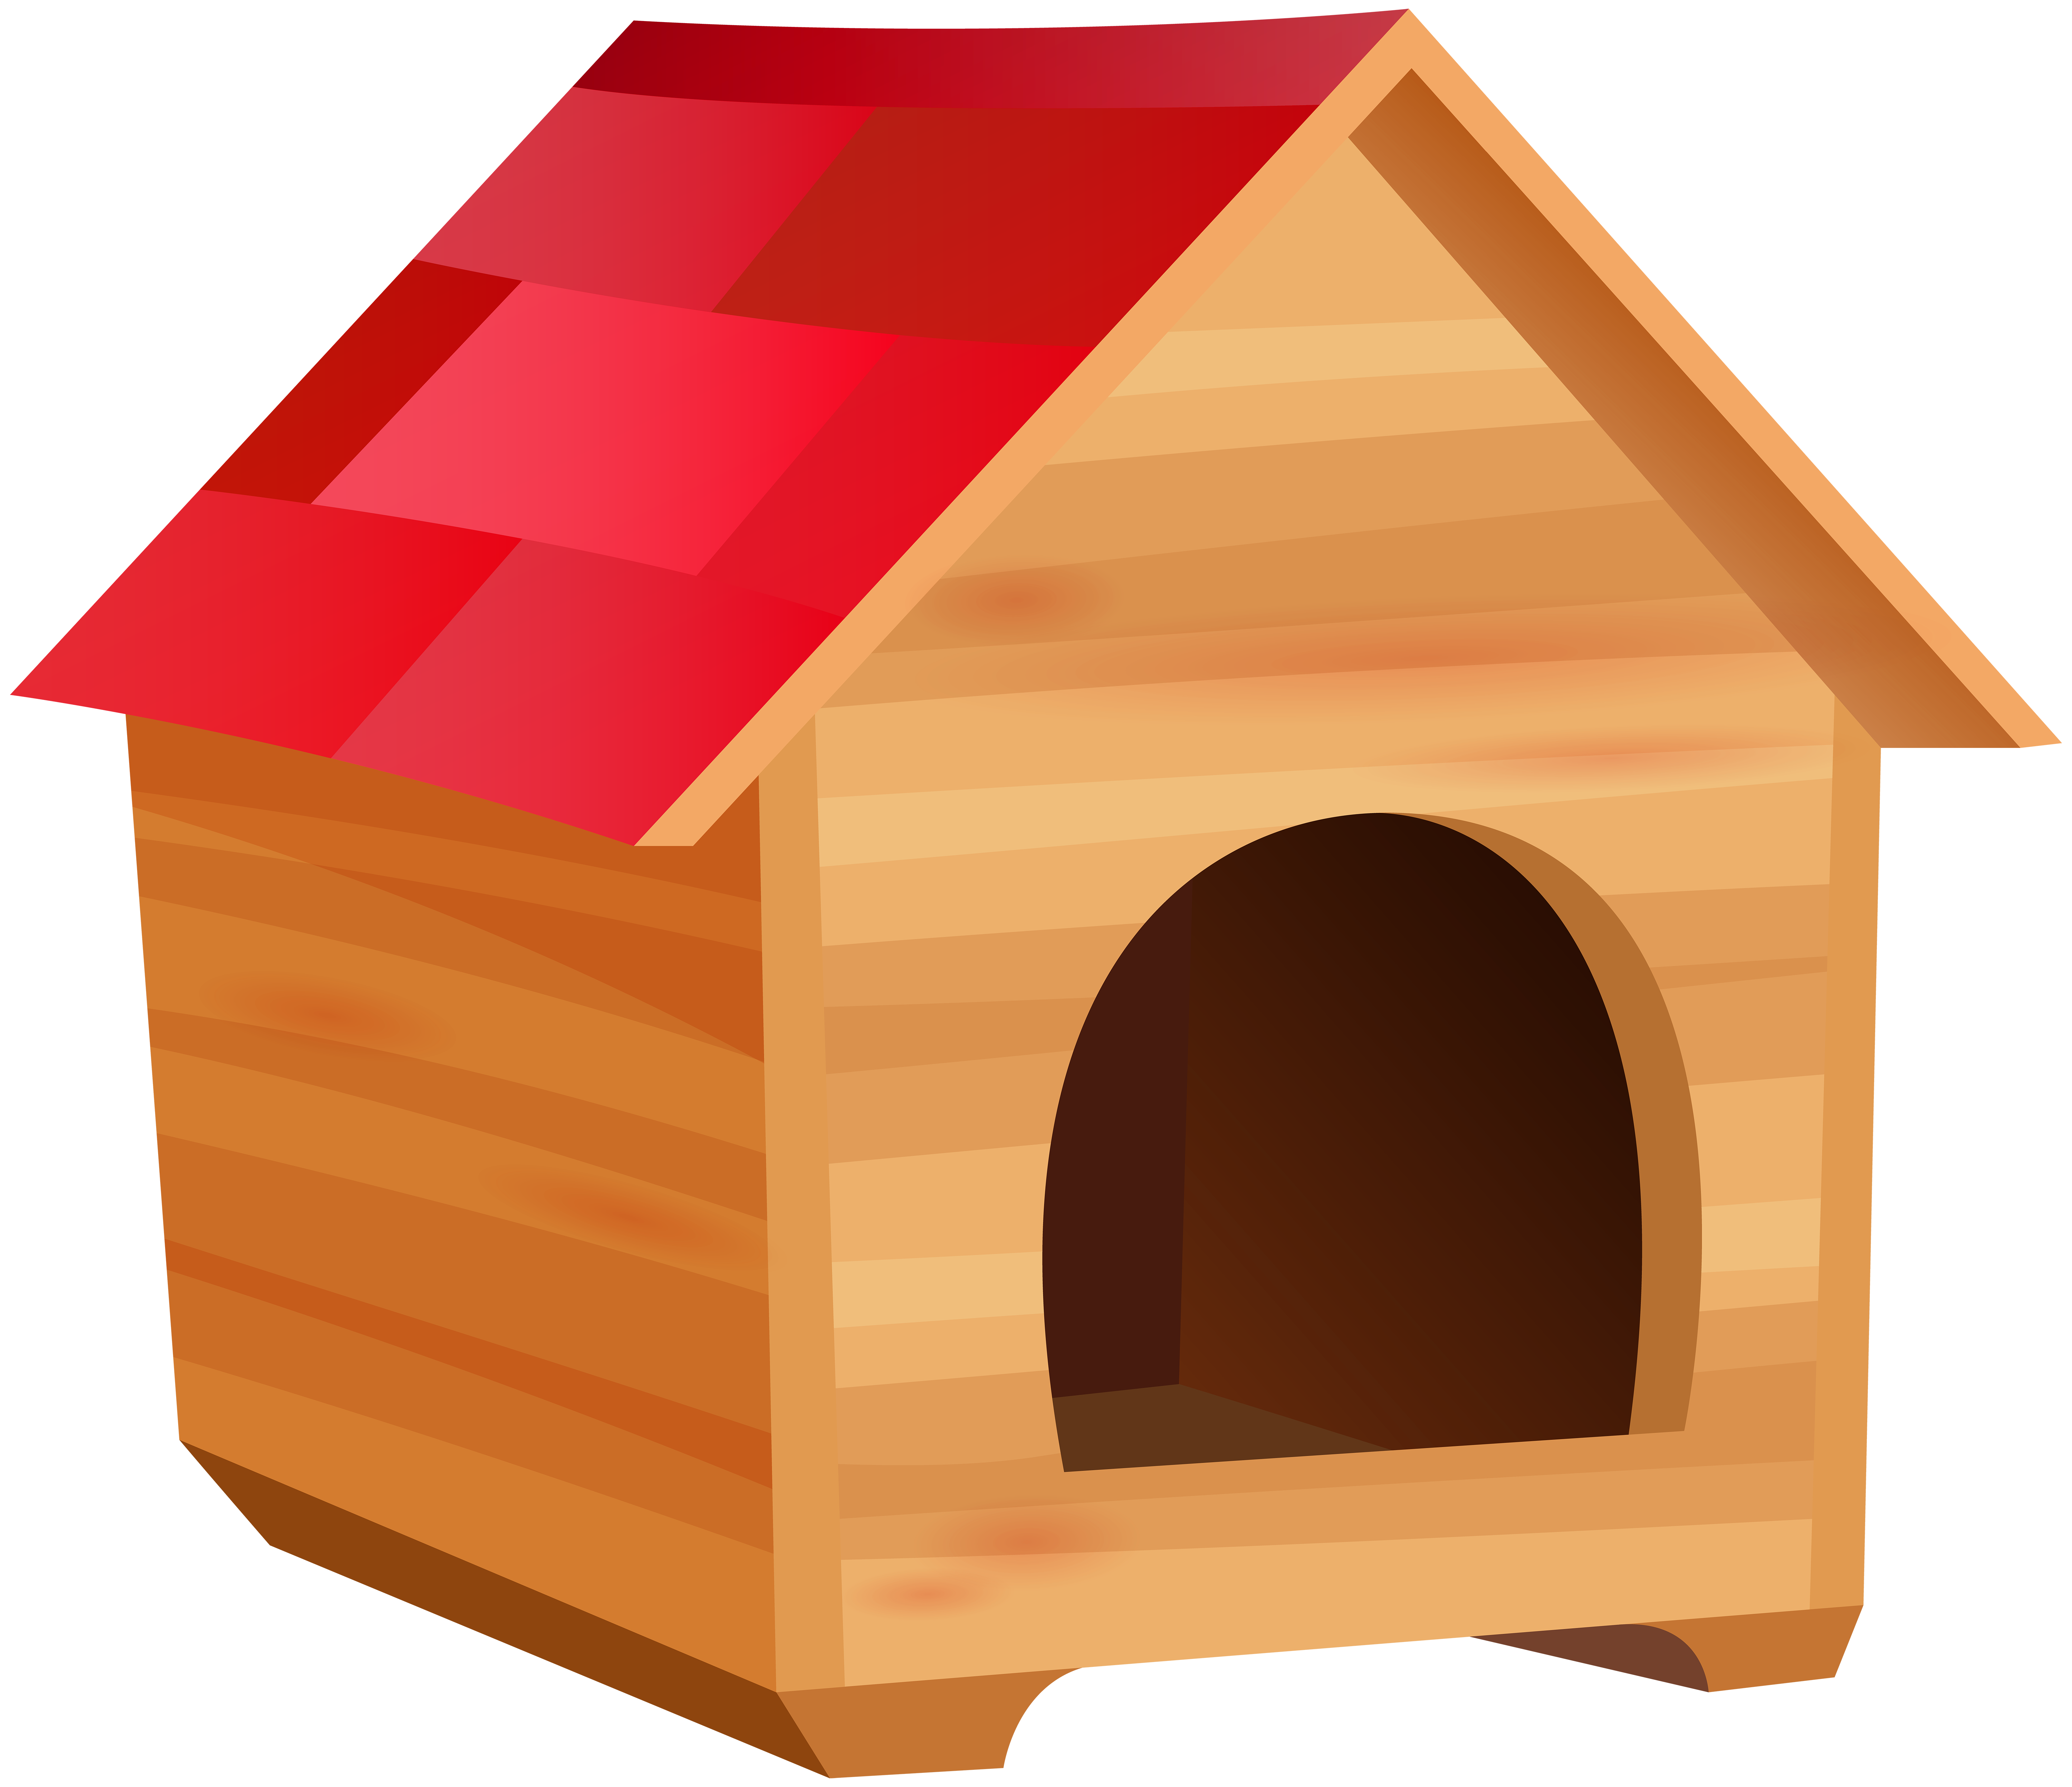 Doghouse clip art best. Dog house png